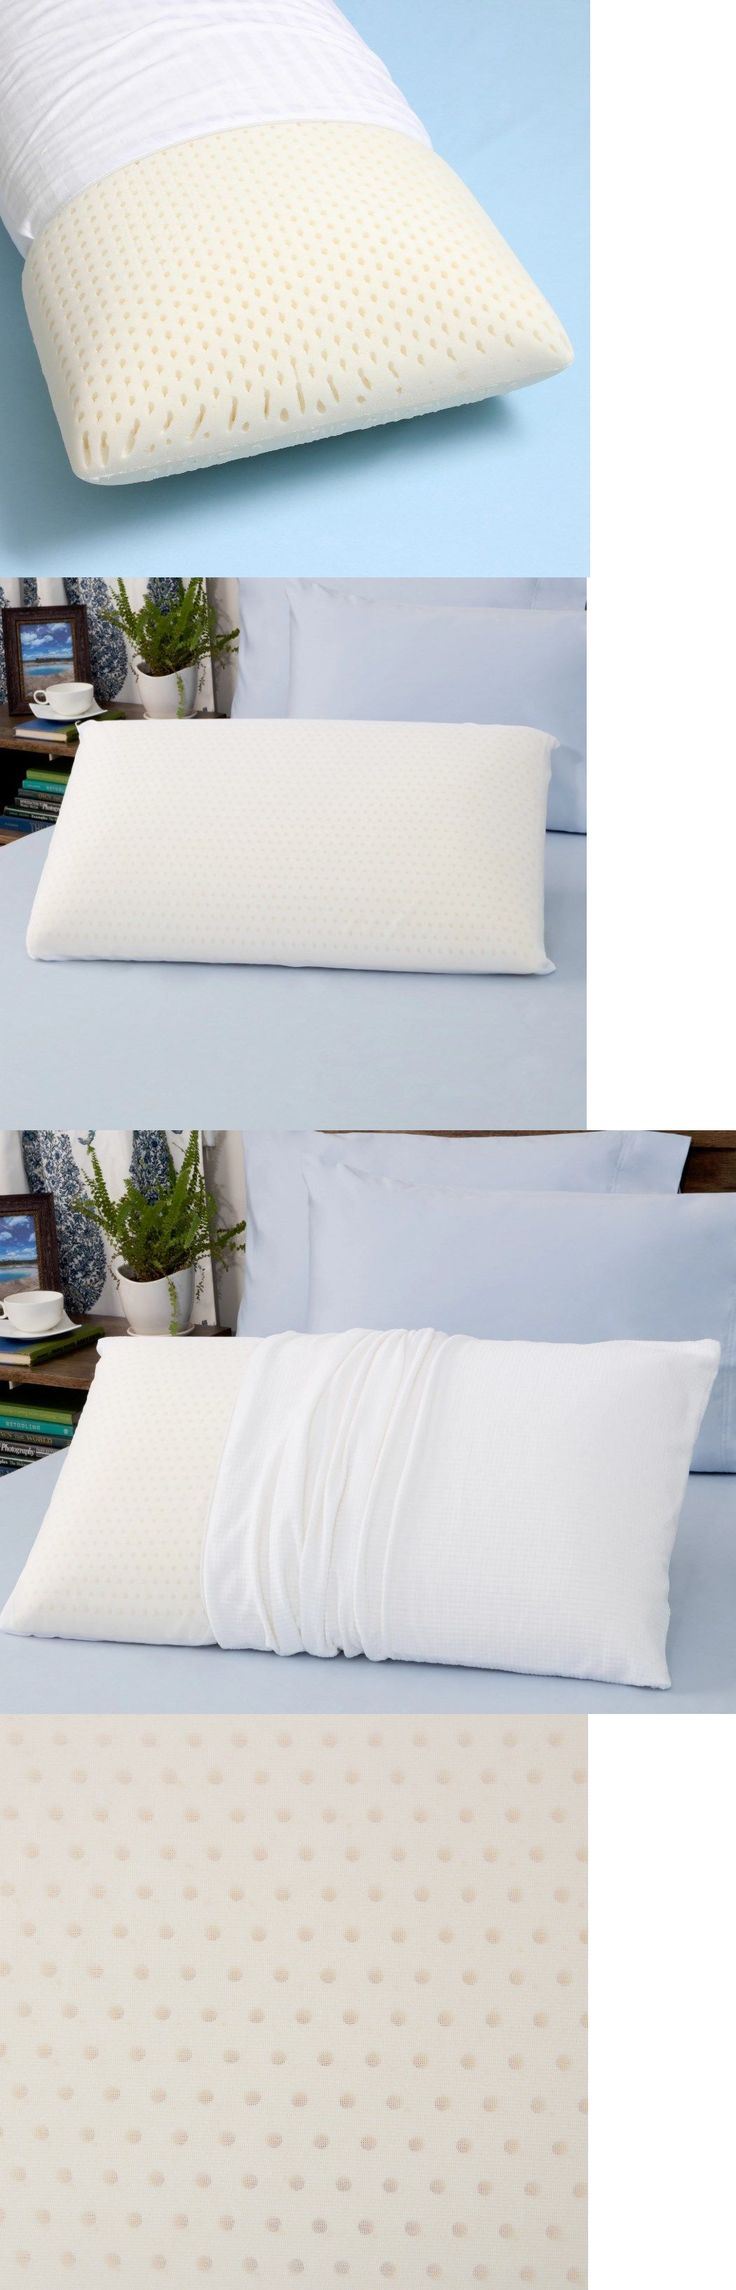 bed pillows latex foam pillow king size firm density bed side back sleeper